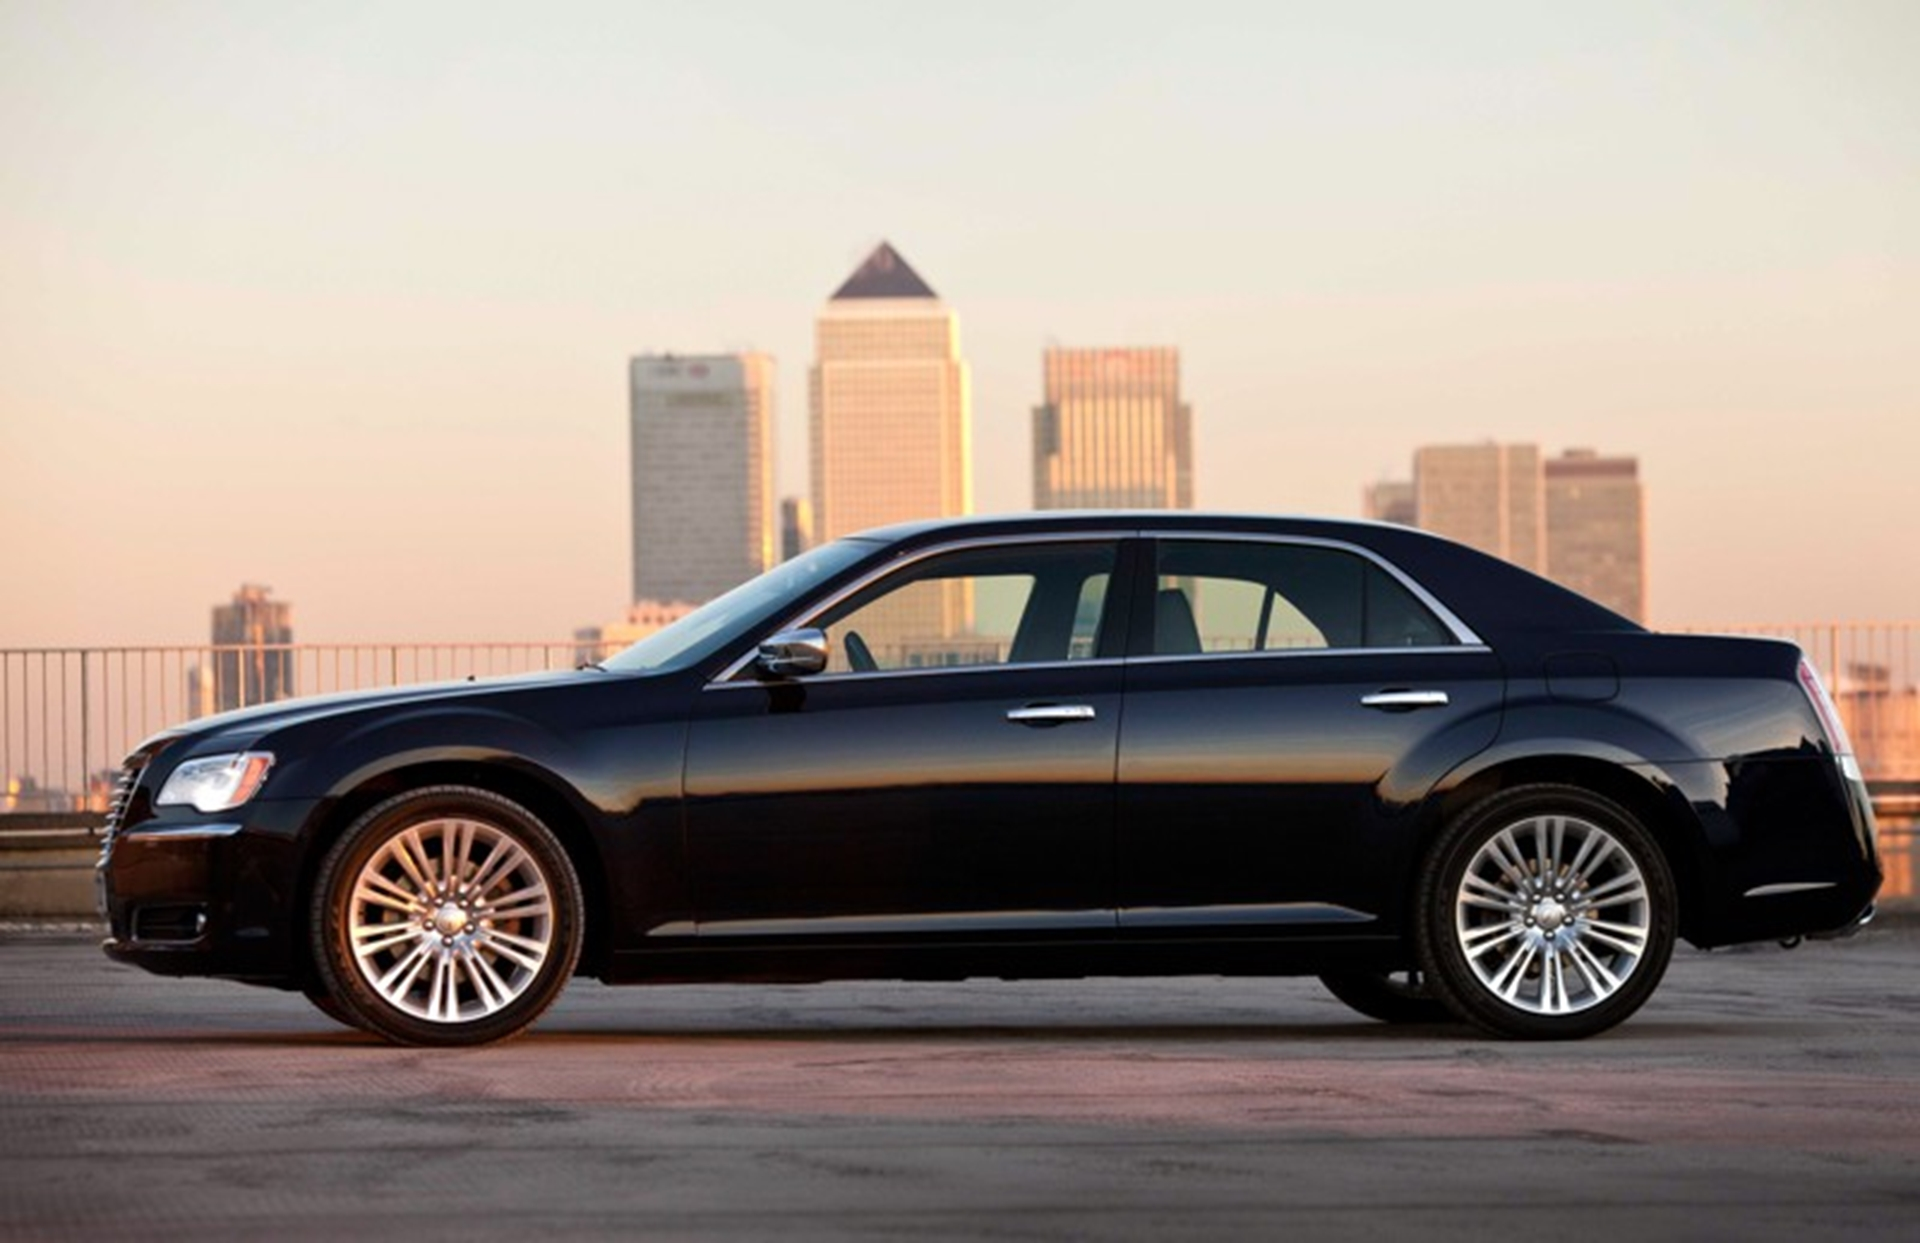 Chrysler brand relaunches in the UK